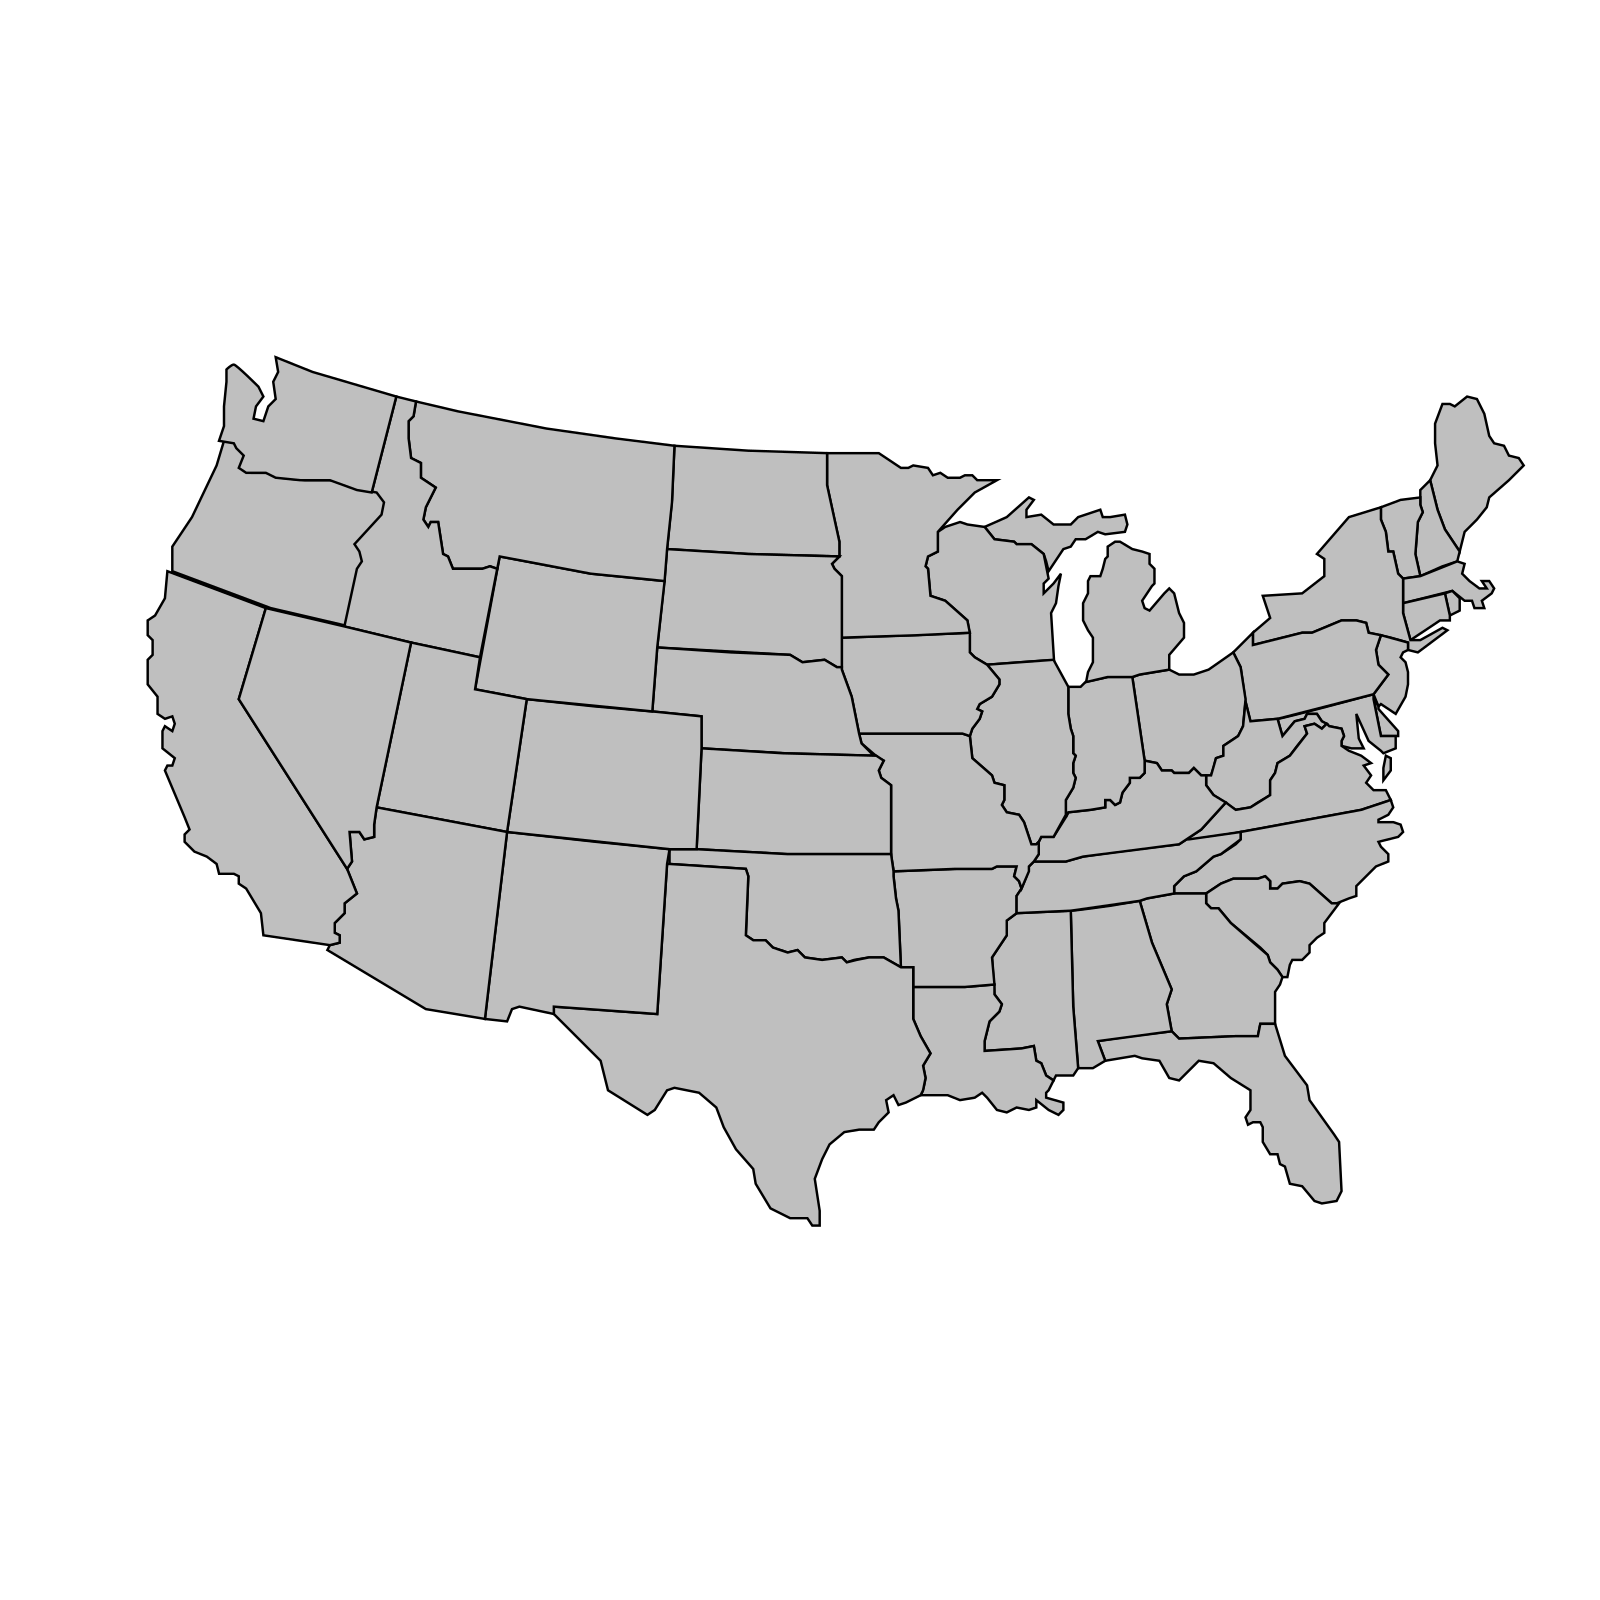 United States Of America Map Outline Gray Clip art, Icon and ...